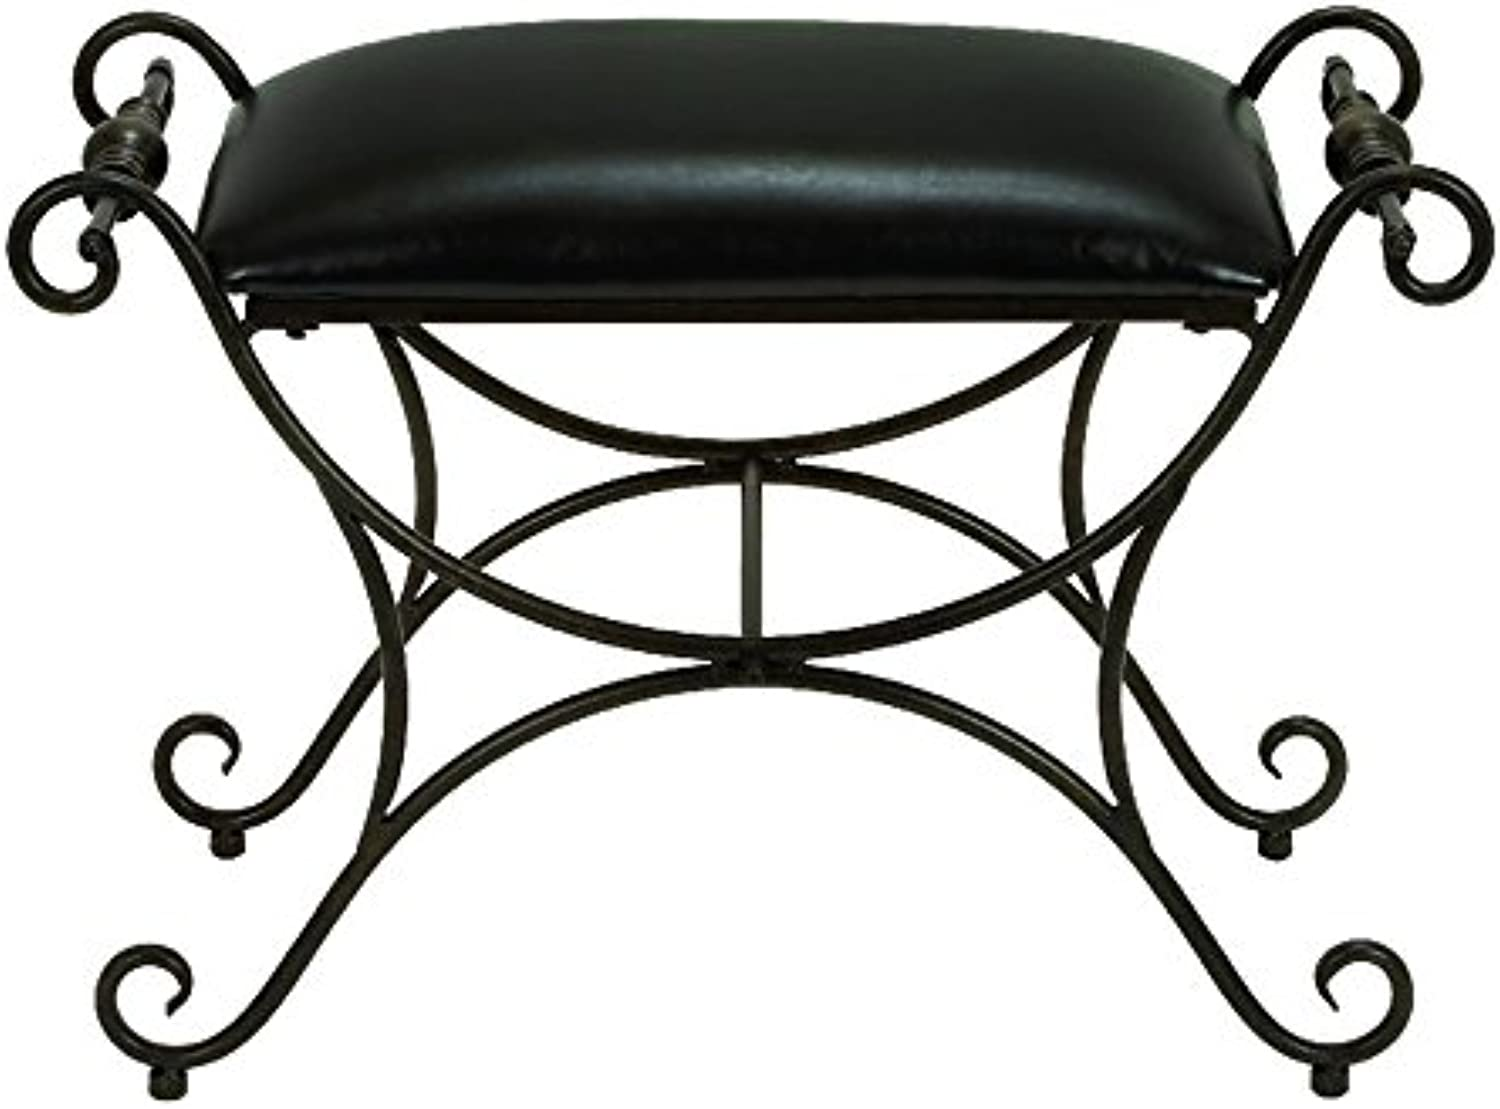 Deco 79 Metal Foot Stool, 31 by 21-Inch